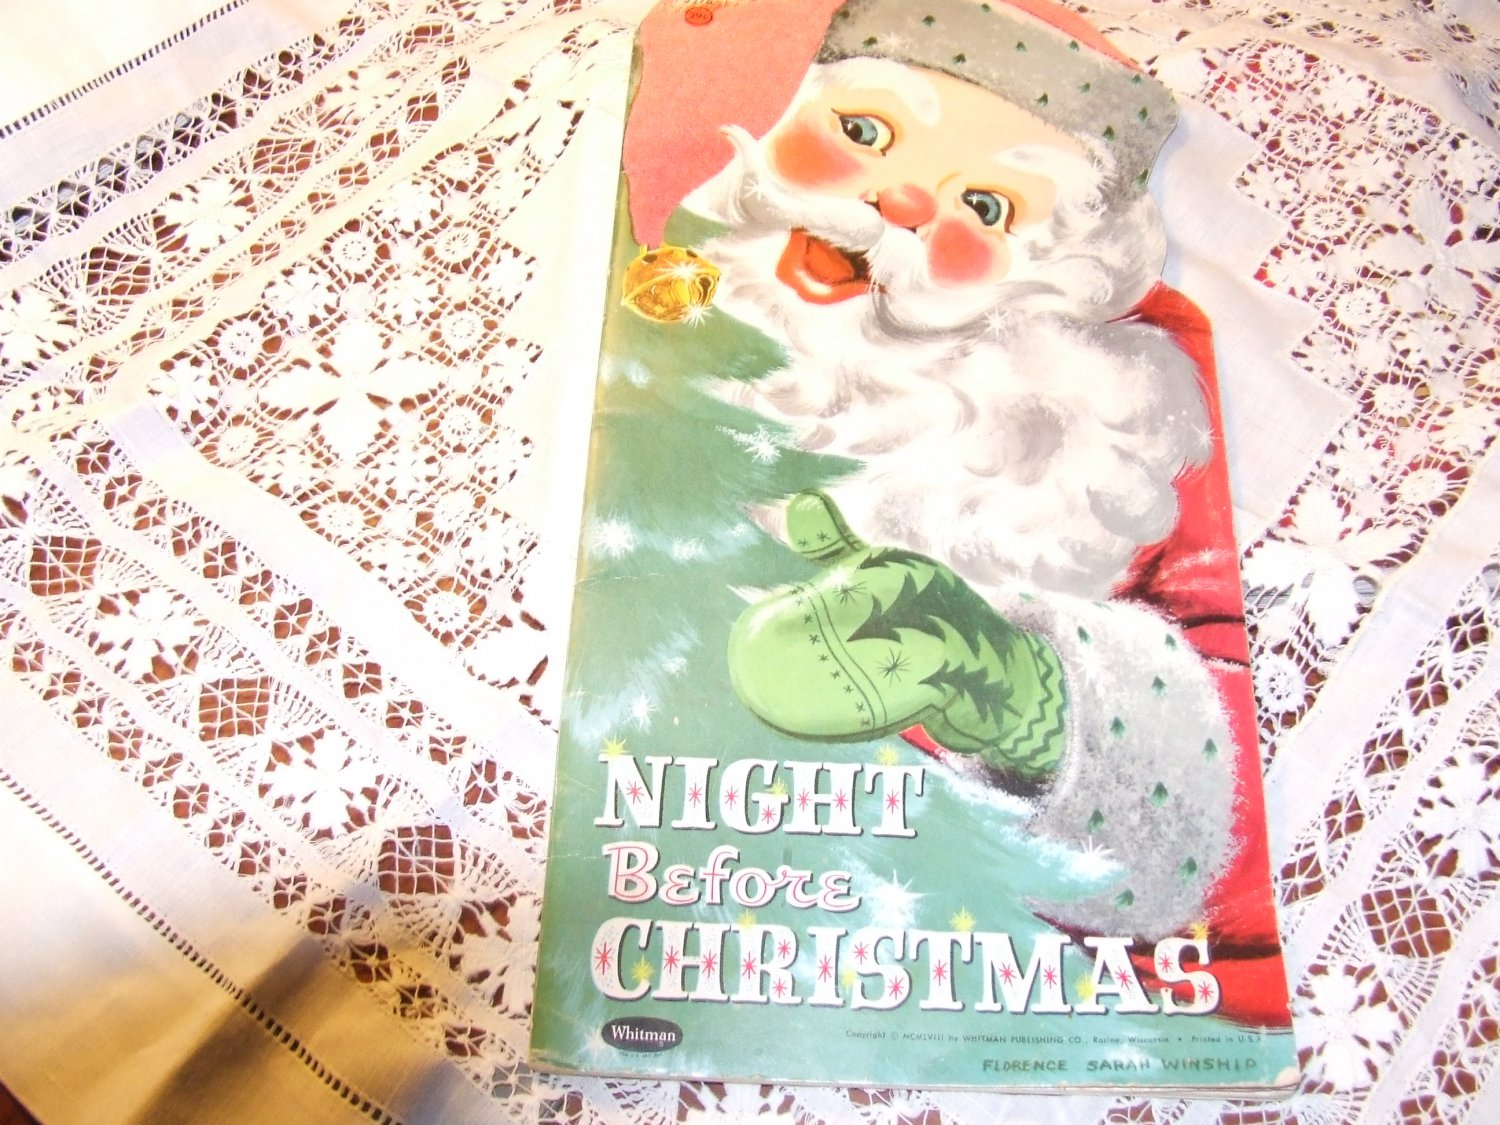 night before christmas book 1950s 5 - Night Before Christmas Book